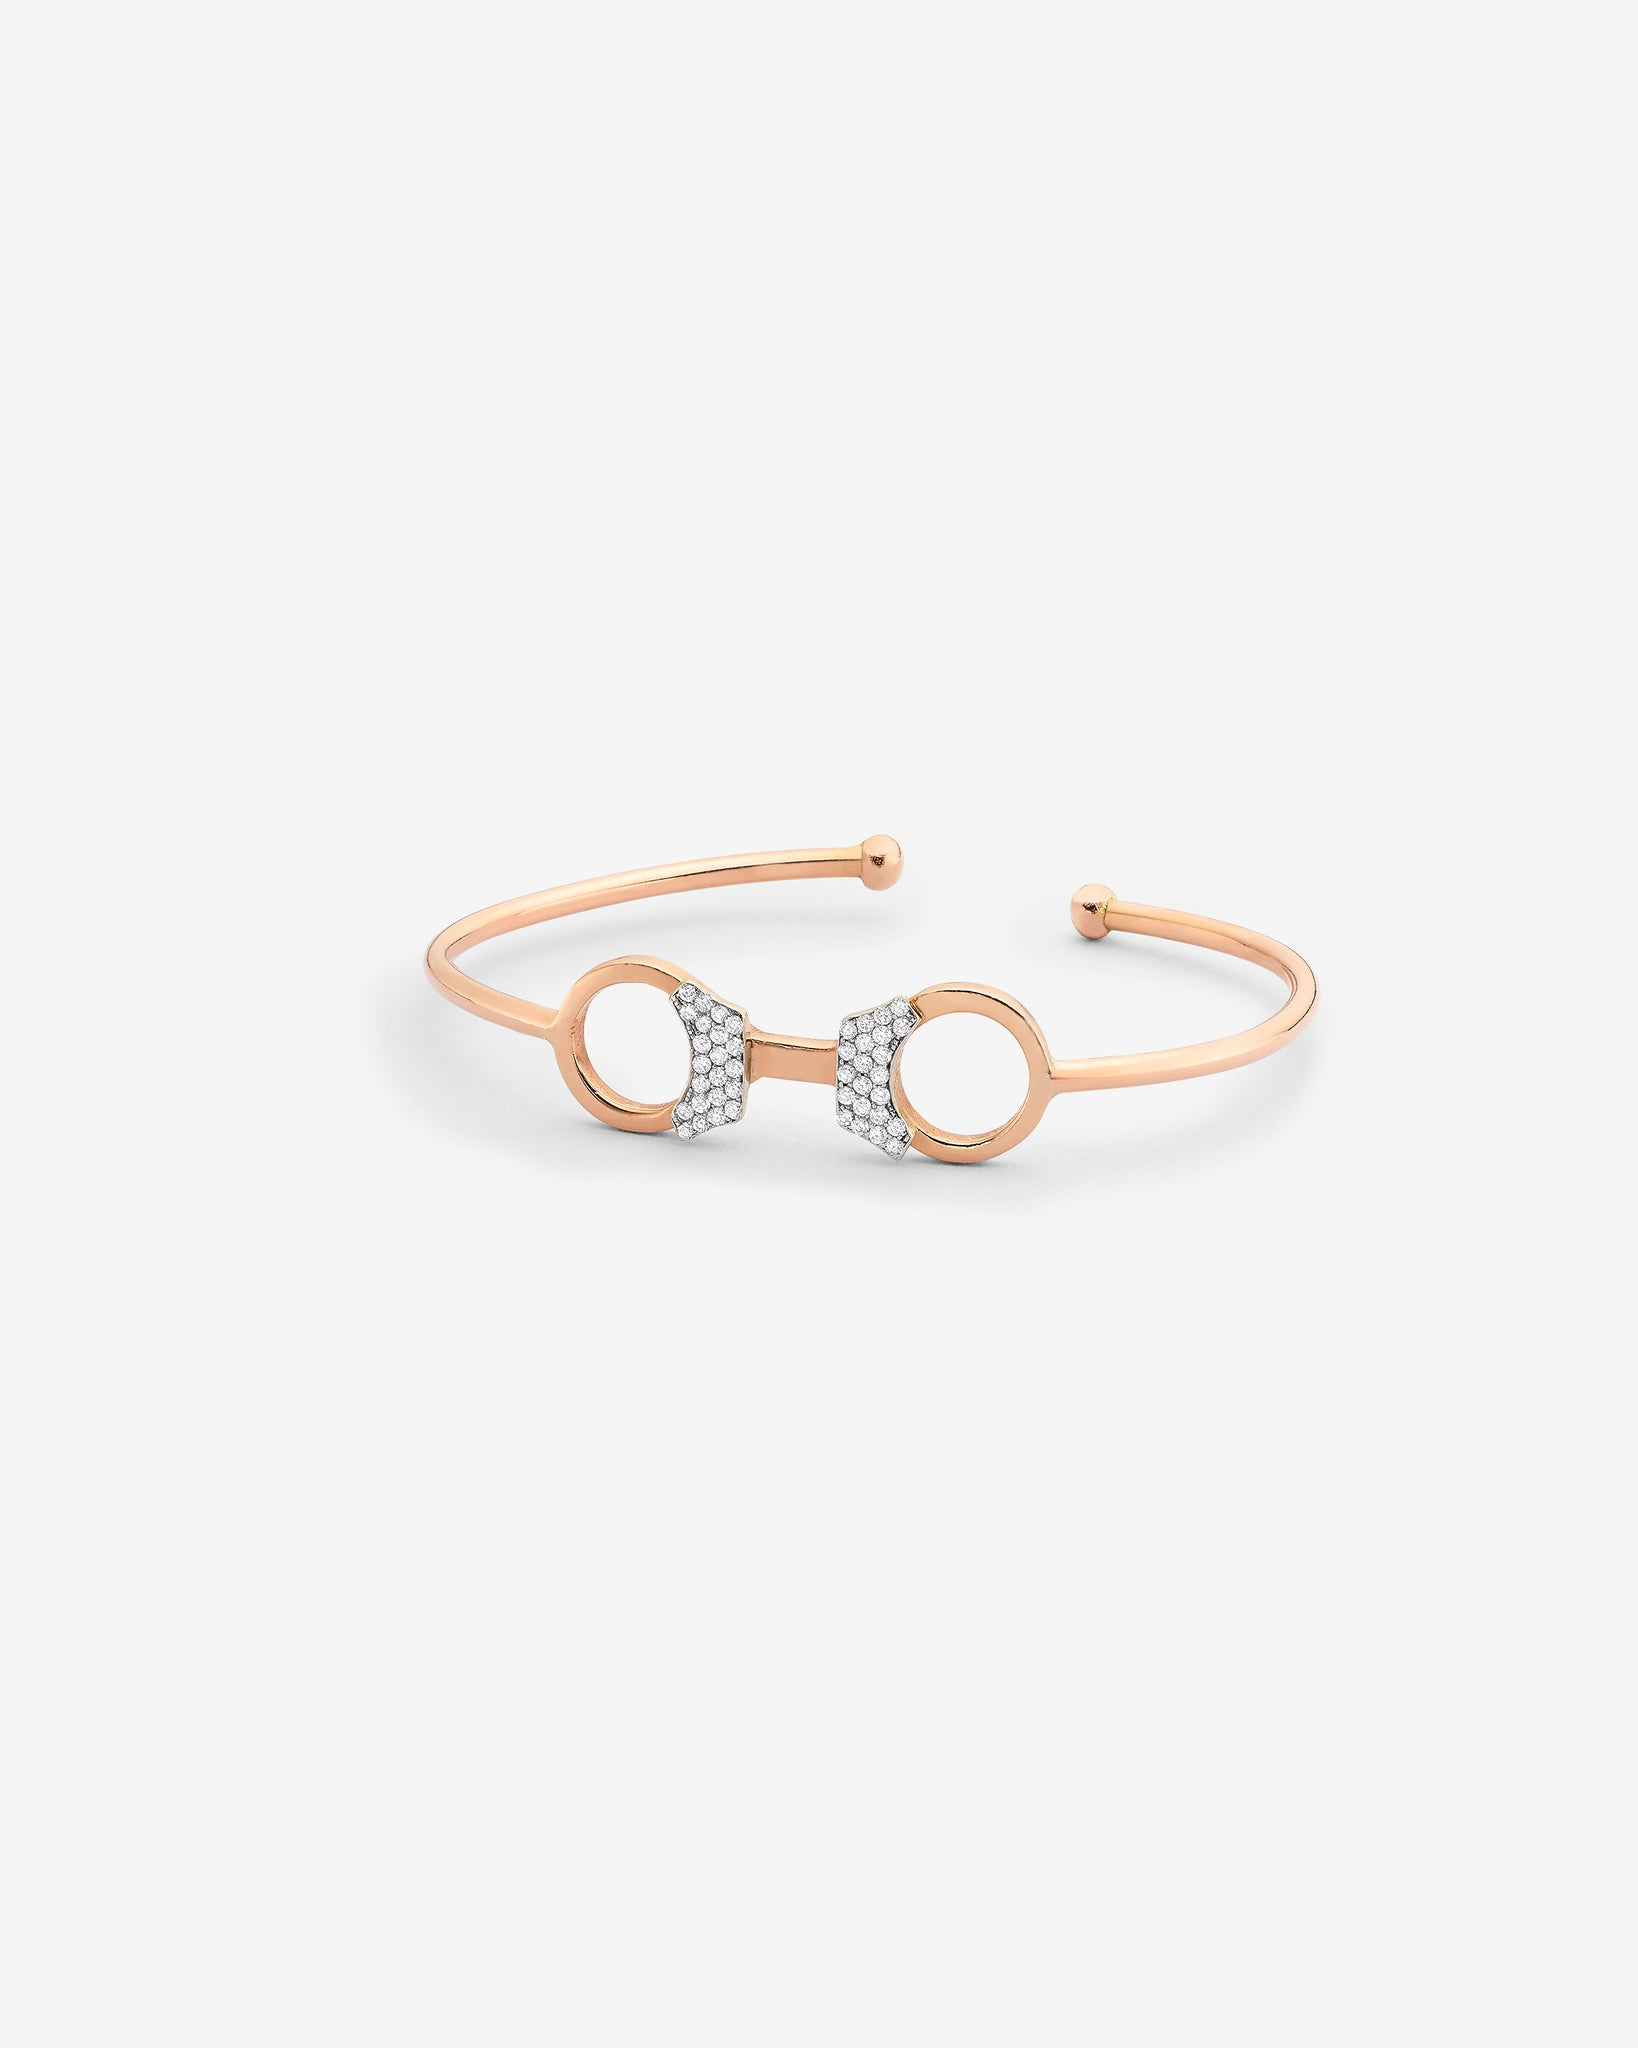 Golden Handcuff Bangle